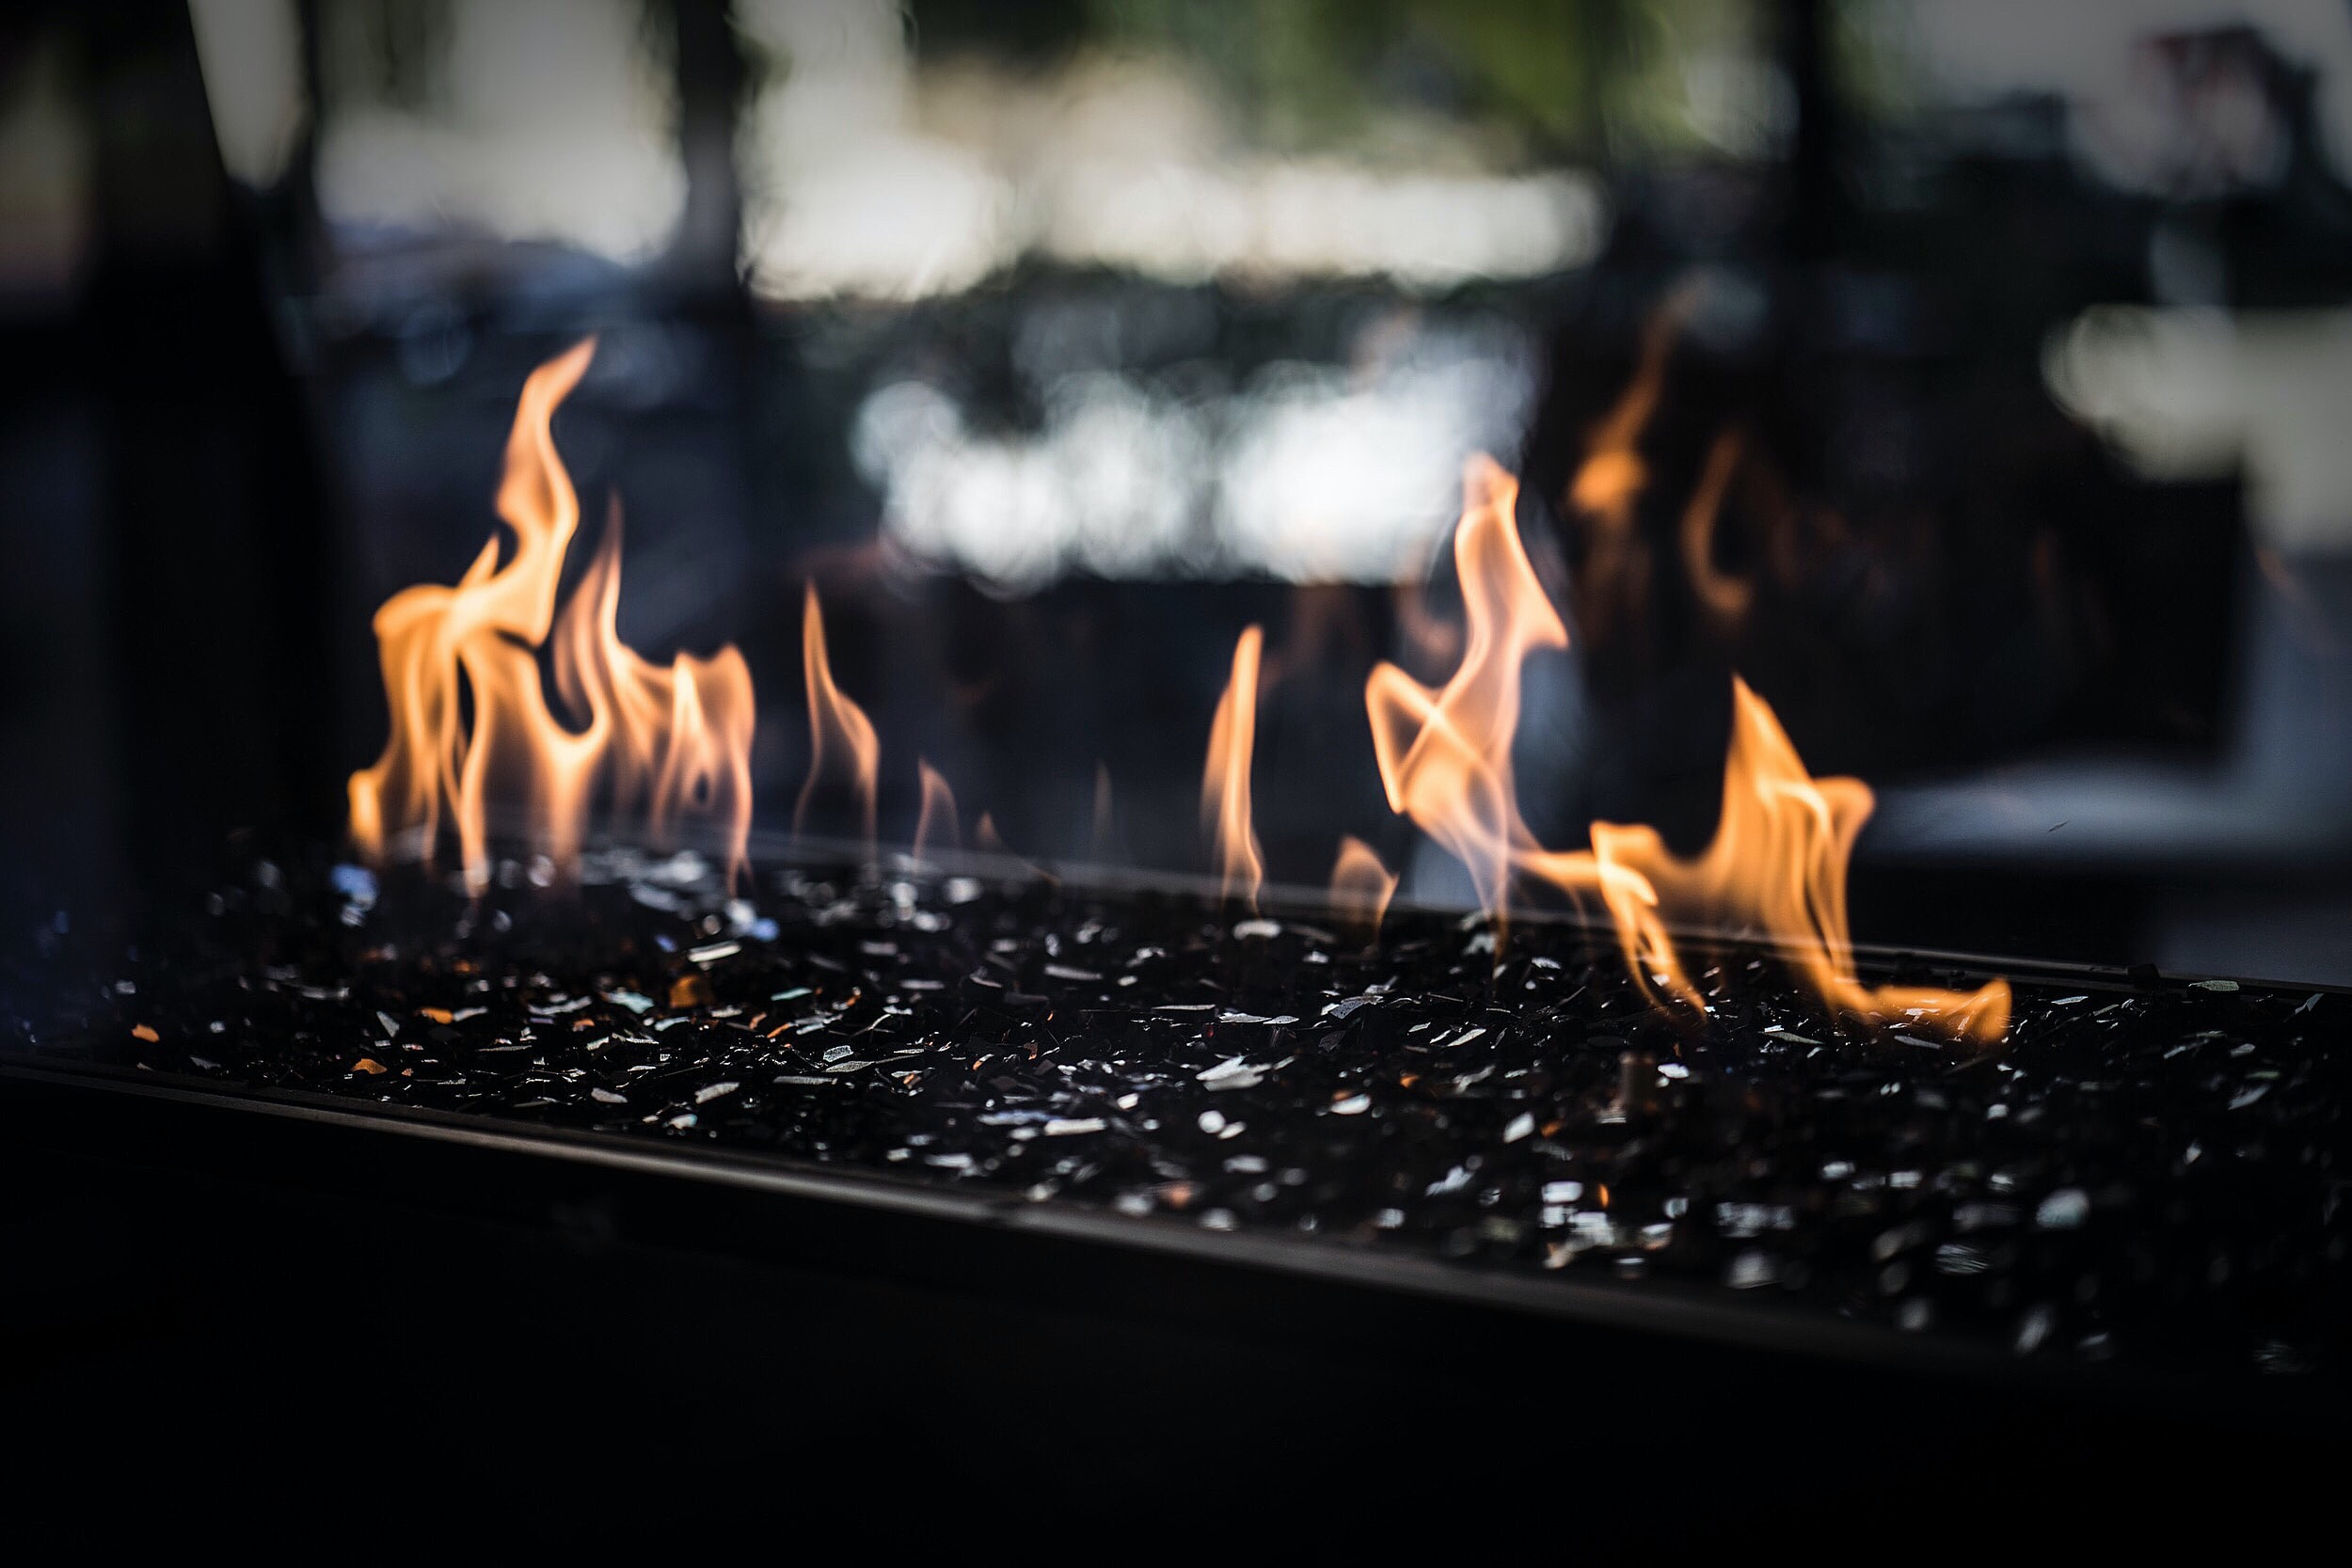 Flames of a charcoal stone fireplace on an outdoor patio